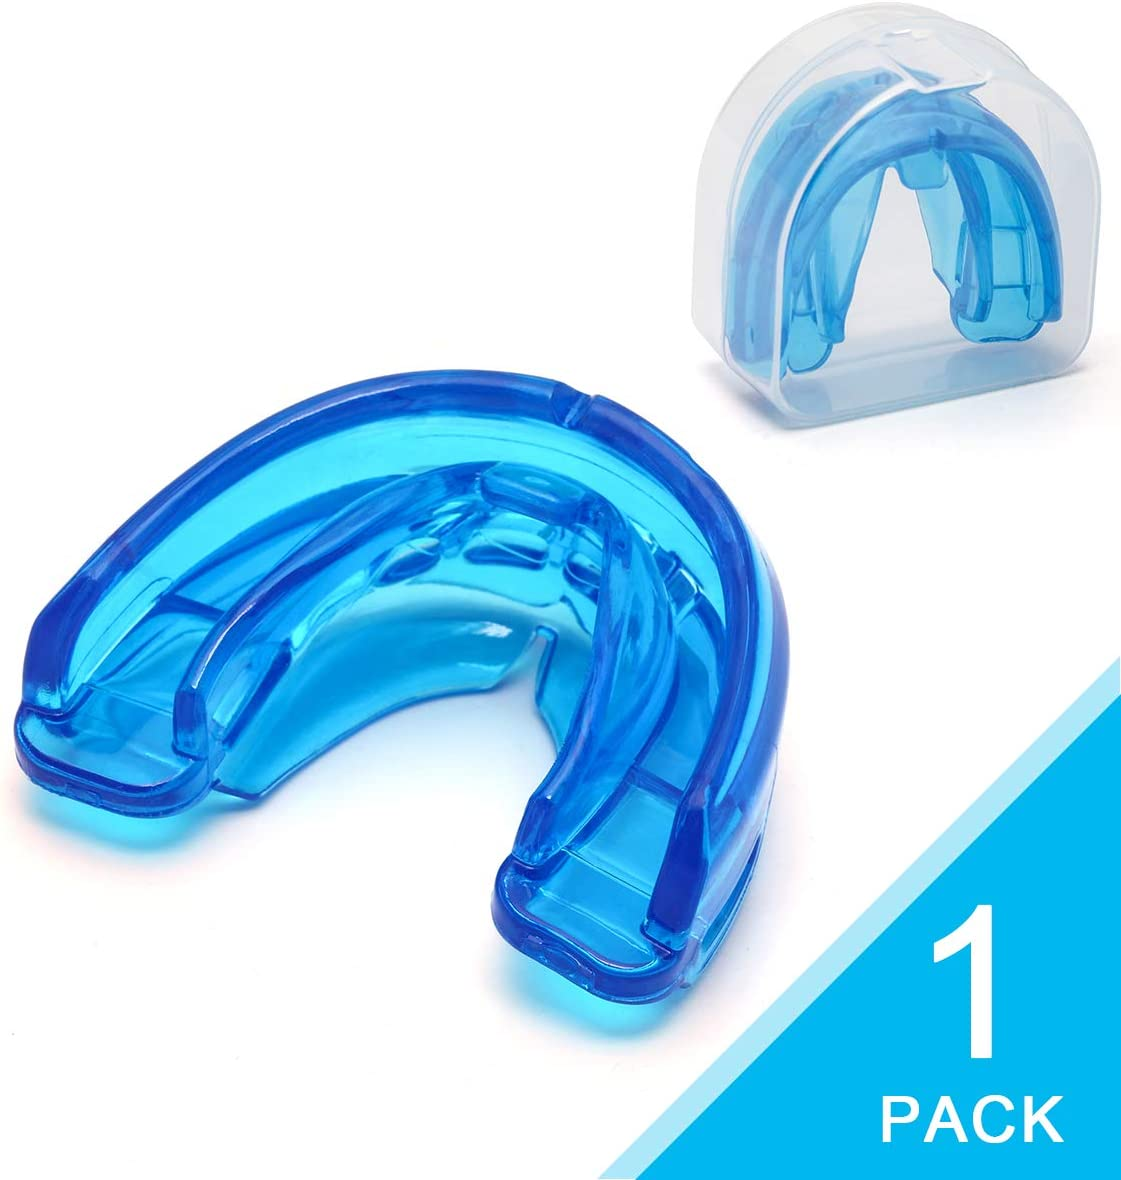 Coolrunner Double Braces Mouth Guard, Mouth Guard Sports, Athletic Mouth Guards,